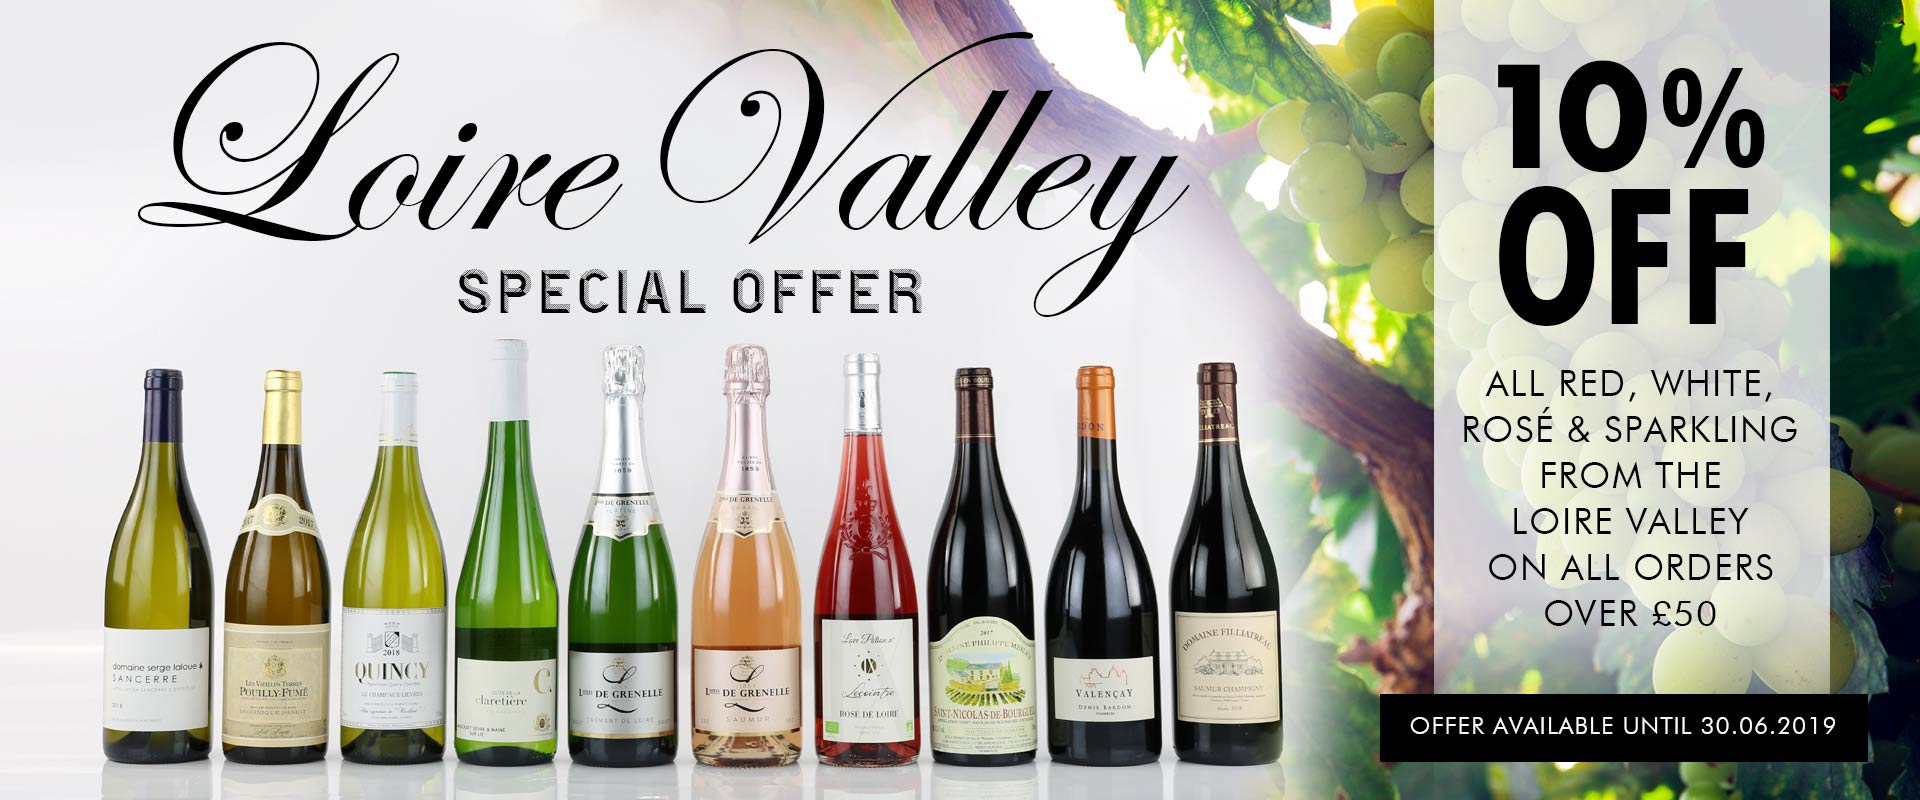 Loire Valley Offer